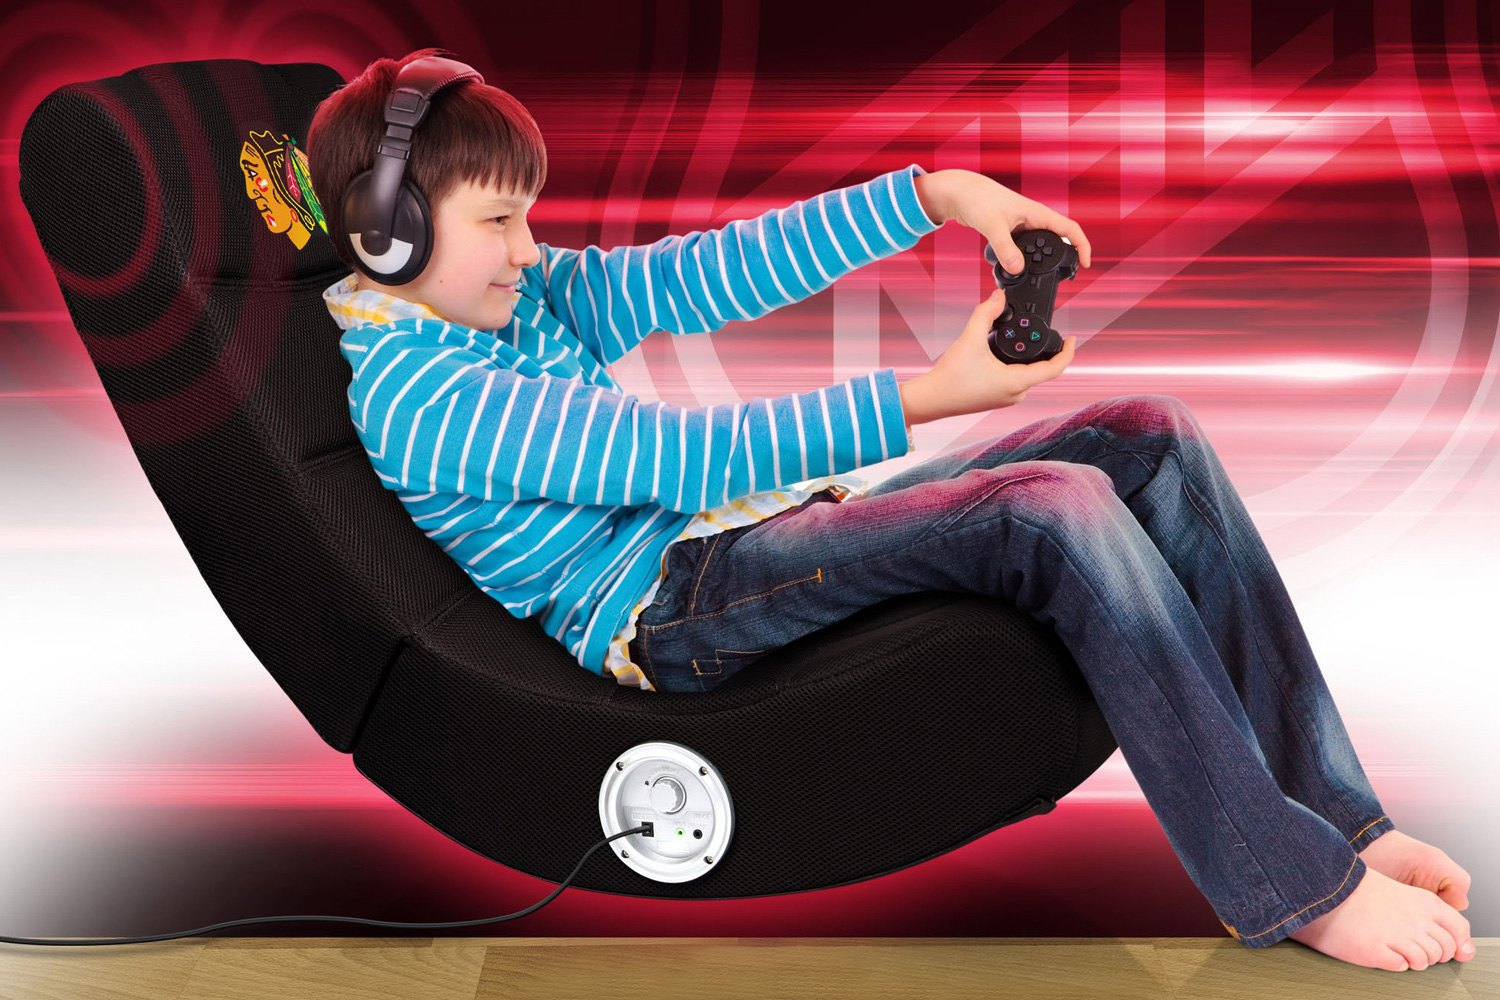 Tremendous Imperial International Nhl Bluetooth Video Chair With Chicago Blackhawks Logo Dailytribune Chair Design For Home Dailytribuneorg